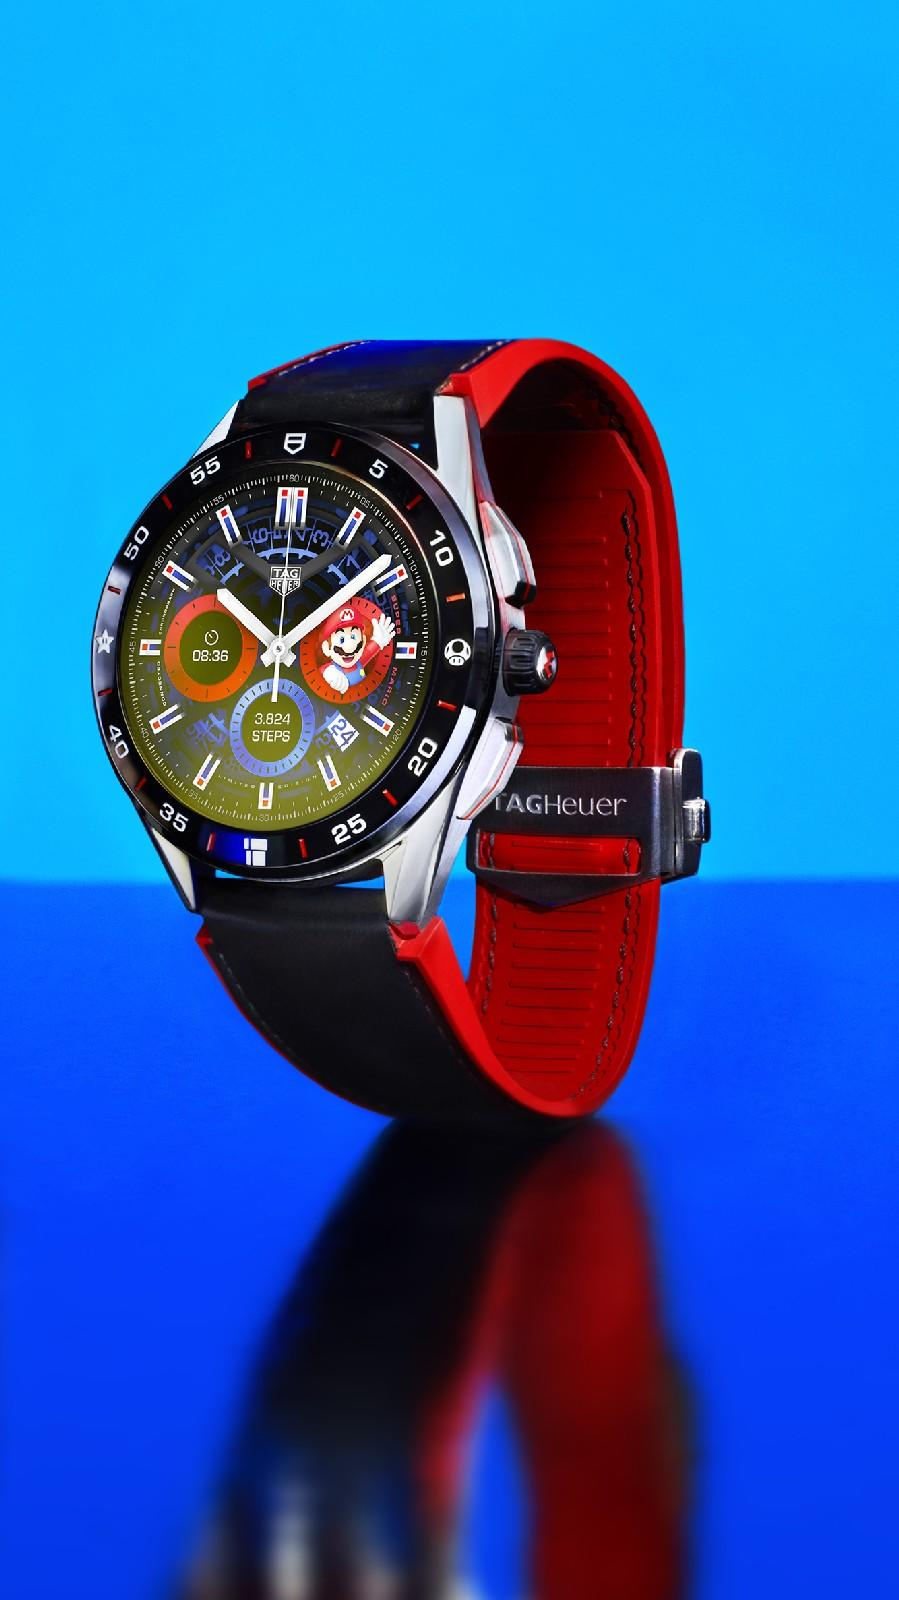 <p>Front view of the Tag Heuer Connected Limited Edition Super Mario with a black-and-red strap against a blue background.</p>